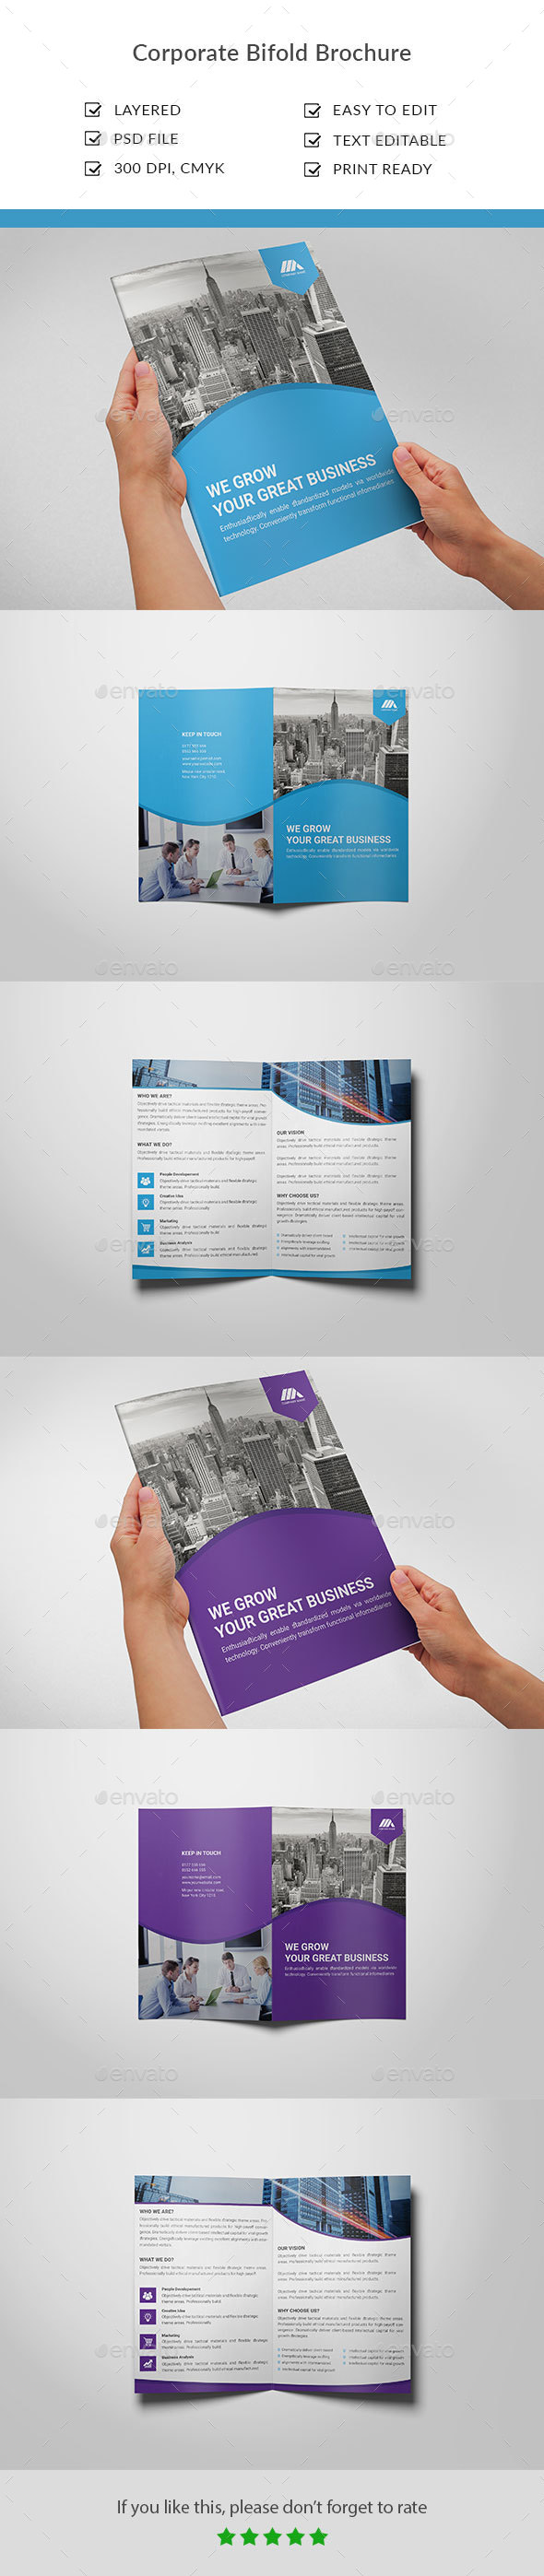 Corporate Bifold Brochure - Brochures Print Templates